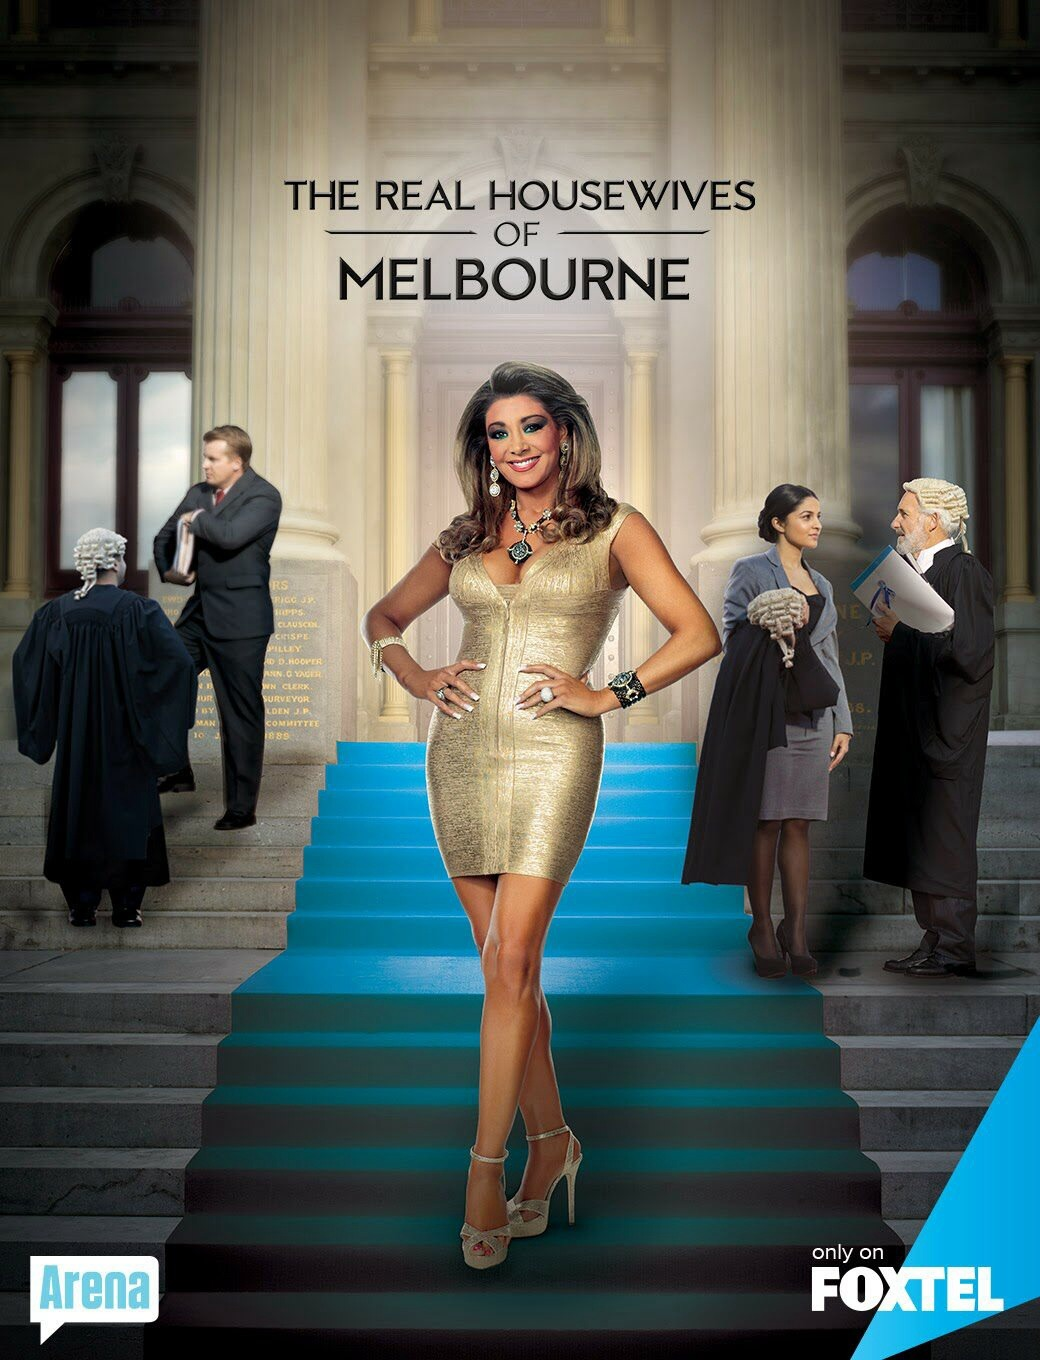 Feet Gina Liano nude photos 2019